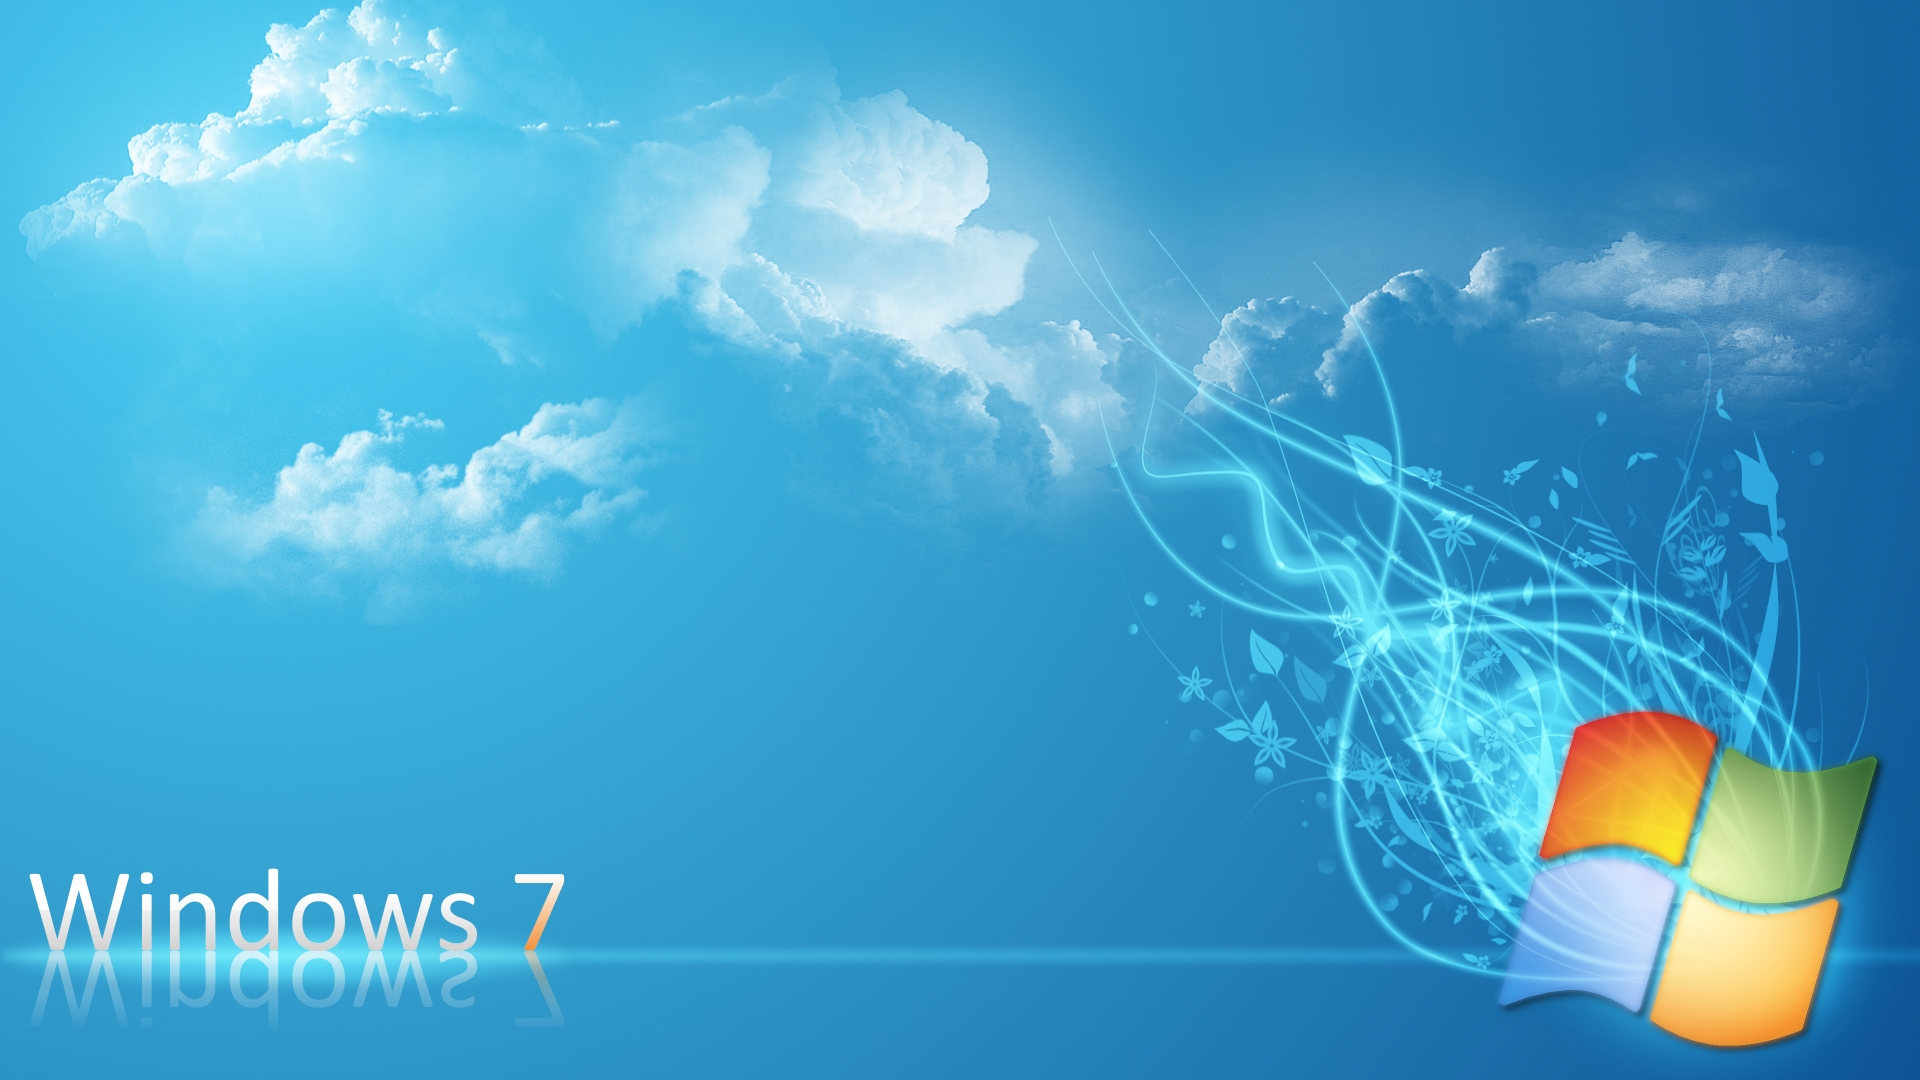 To buy new Windows 7 at great price, check this out .